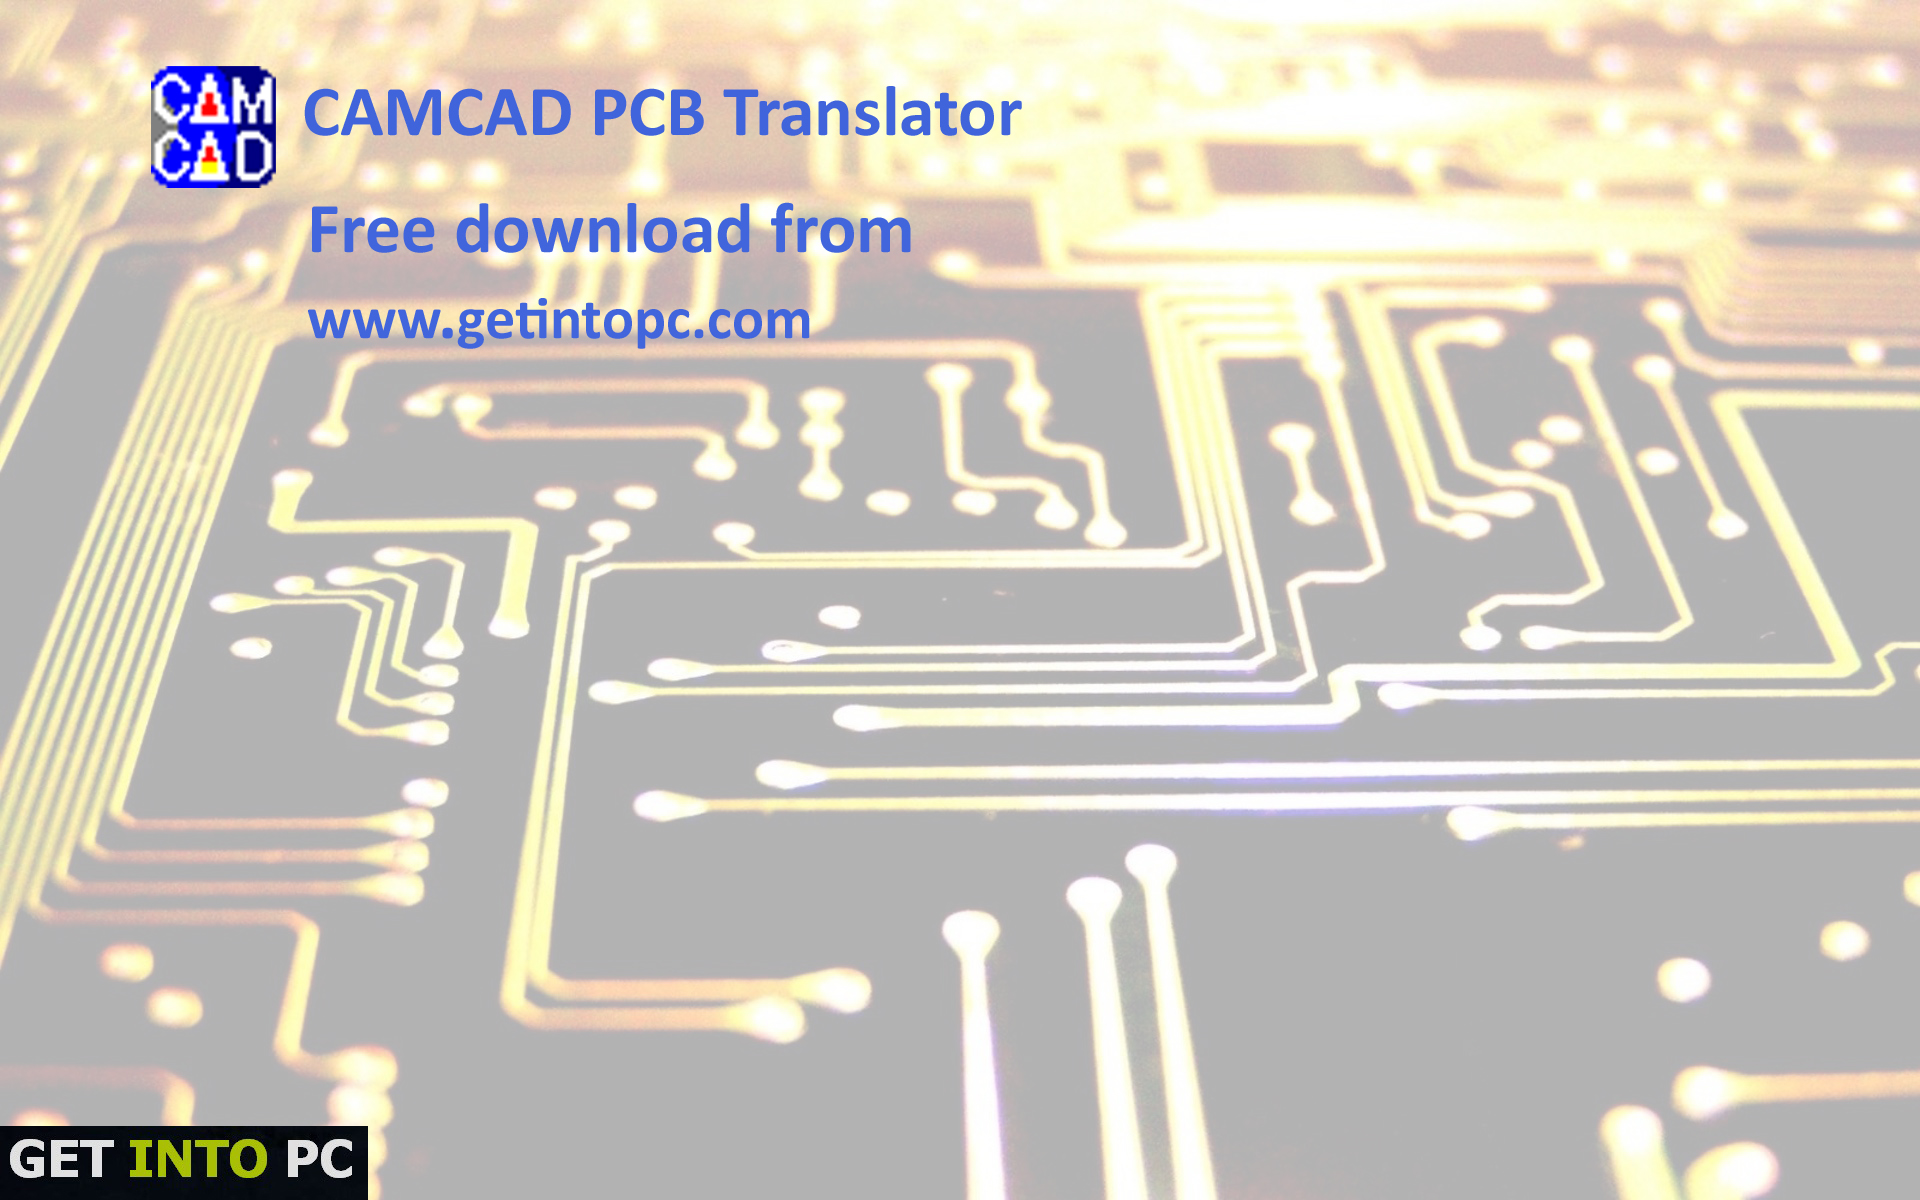 CAMCAD PCB Translator Free